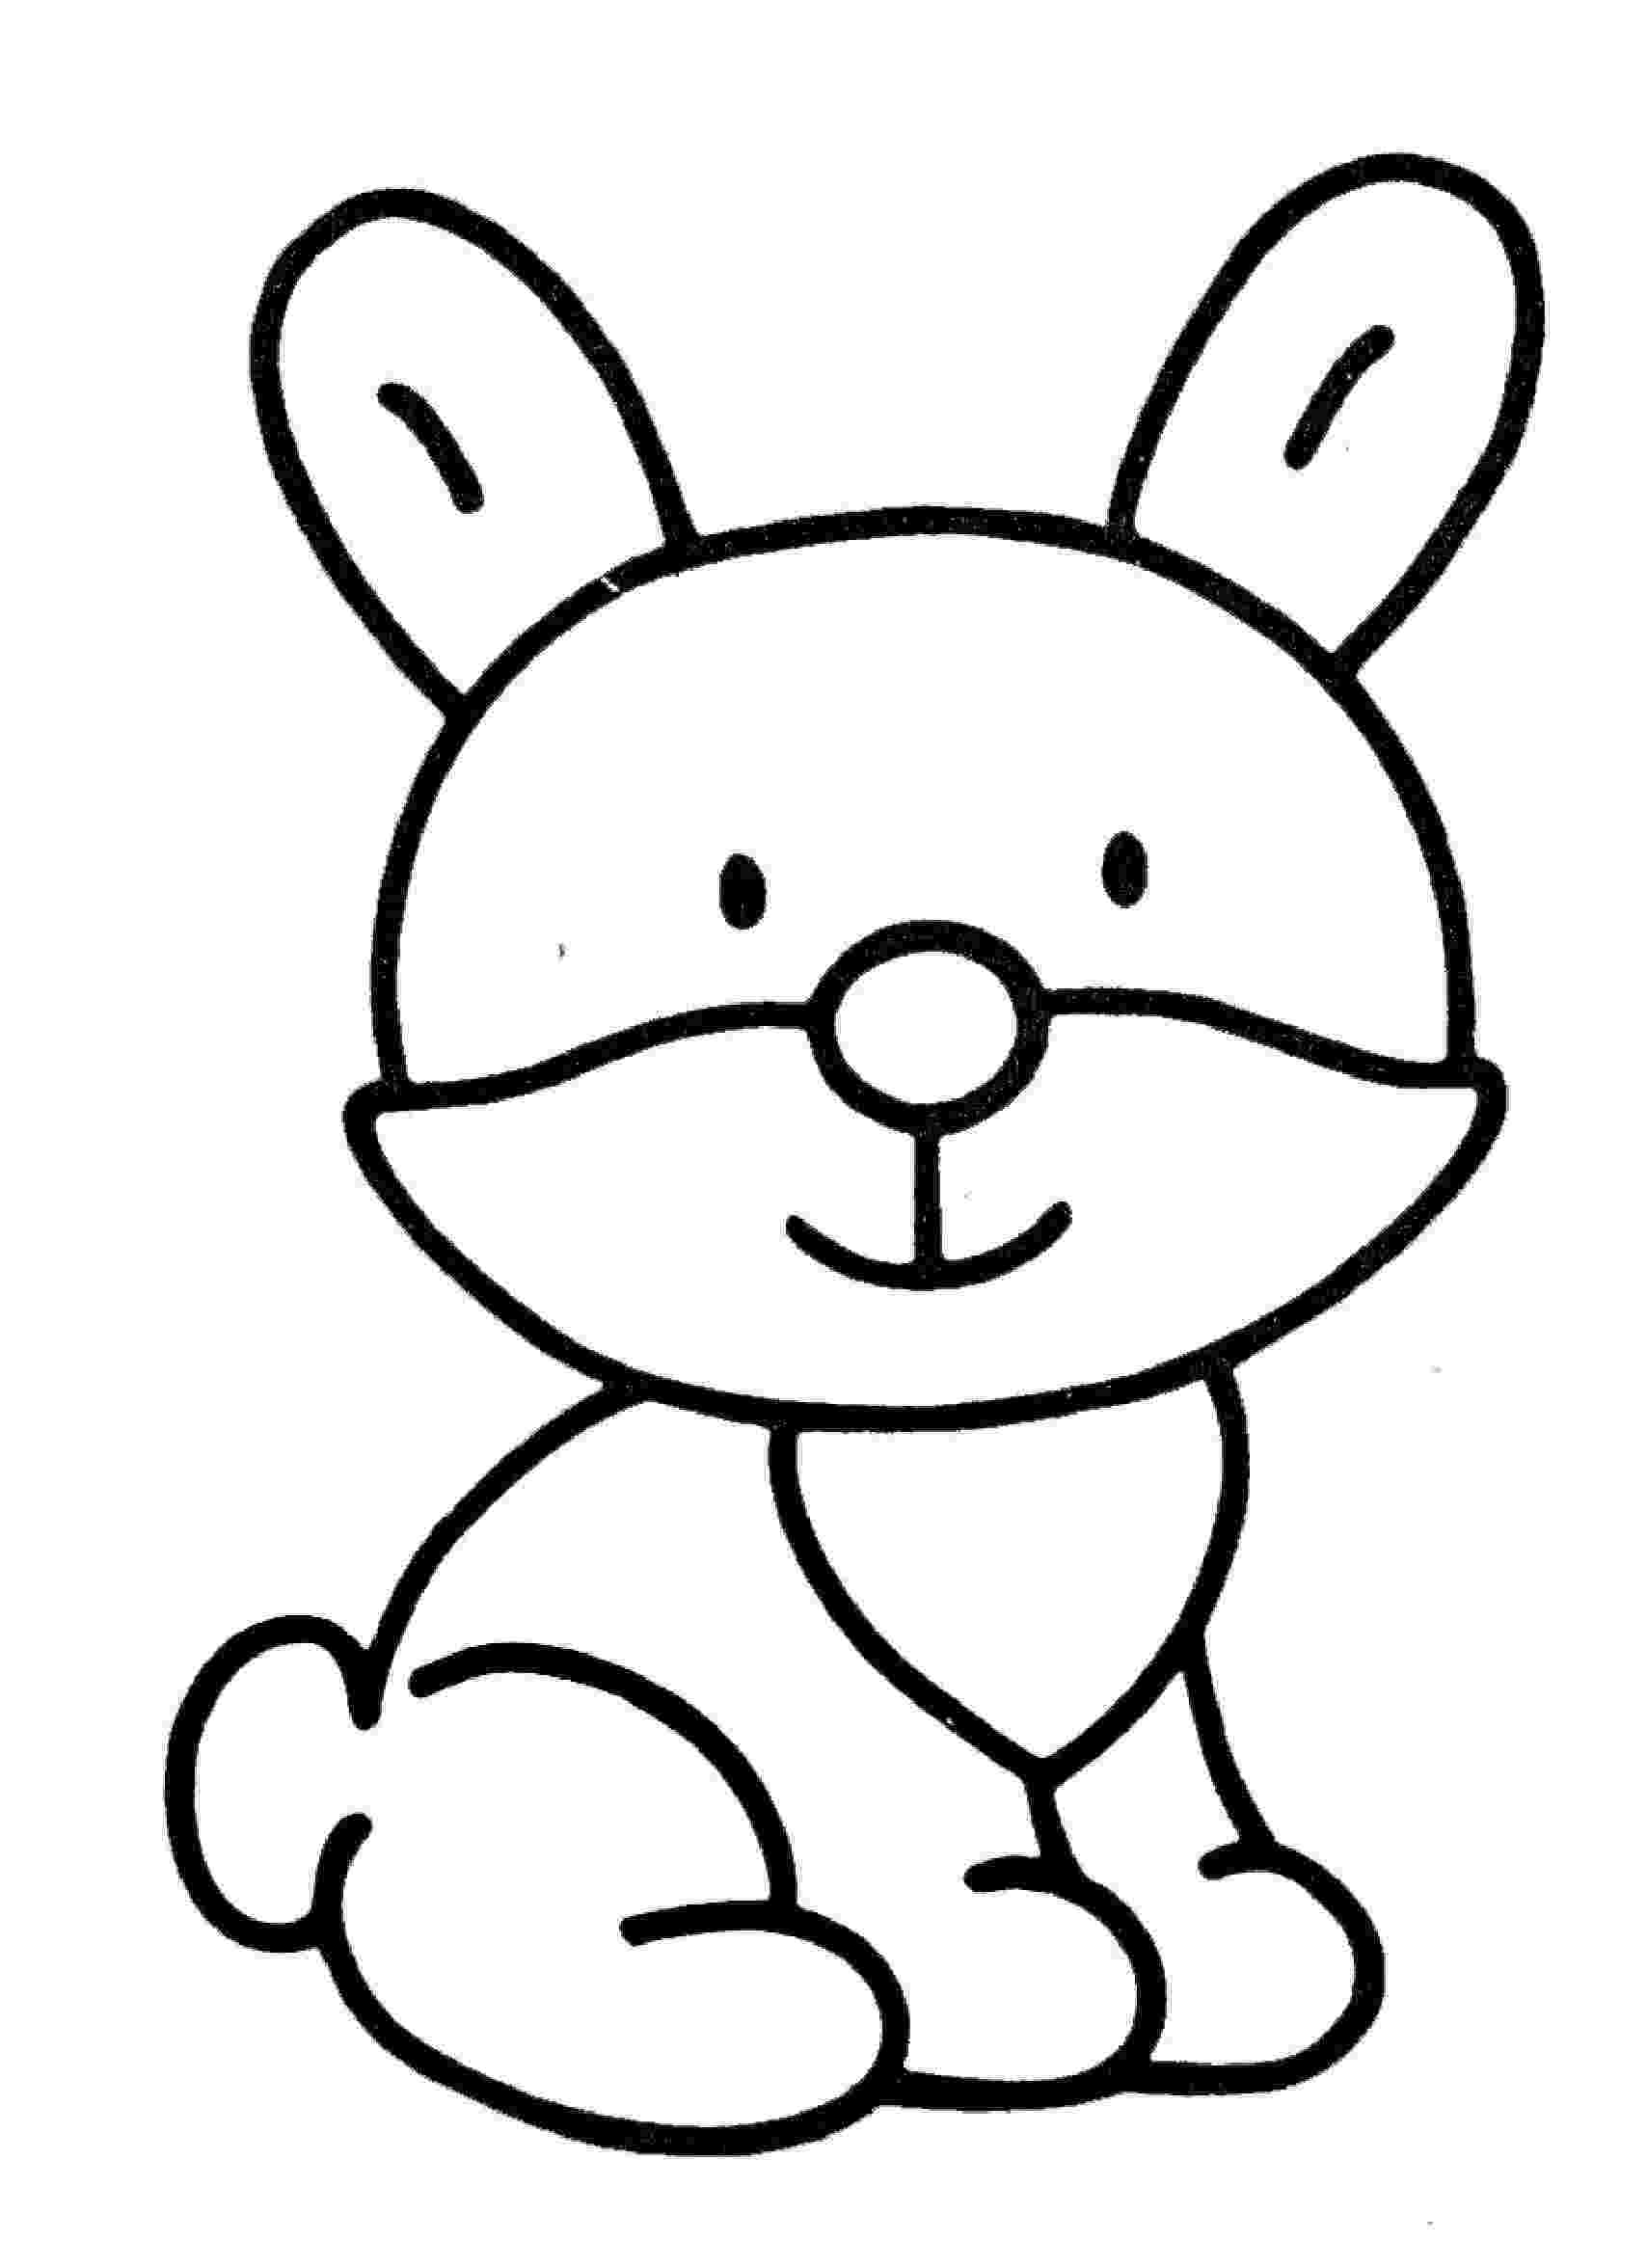 colouring book pages to print free printable tree coloring pages for kids cool2bkids colouring to book pages print